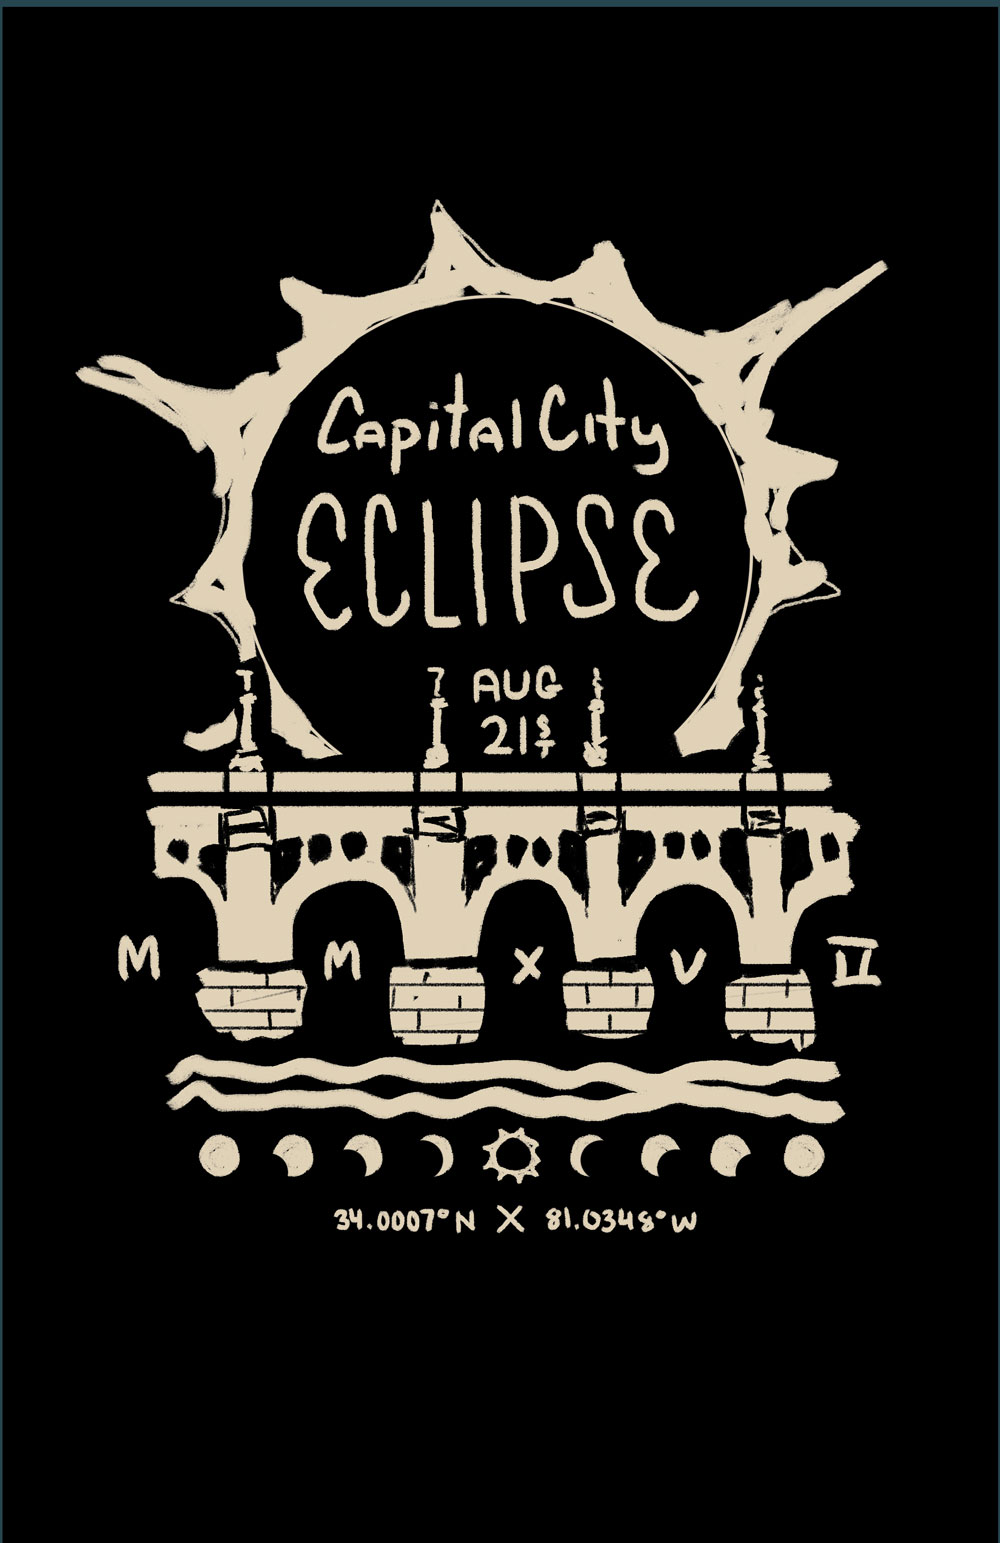 """2. This on features the well known Gervais St bridge. The idea would be to have the total eclipse atop the bridge with """"Capital City Eclipse"""" in an eye-catching typestyle."""